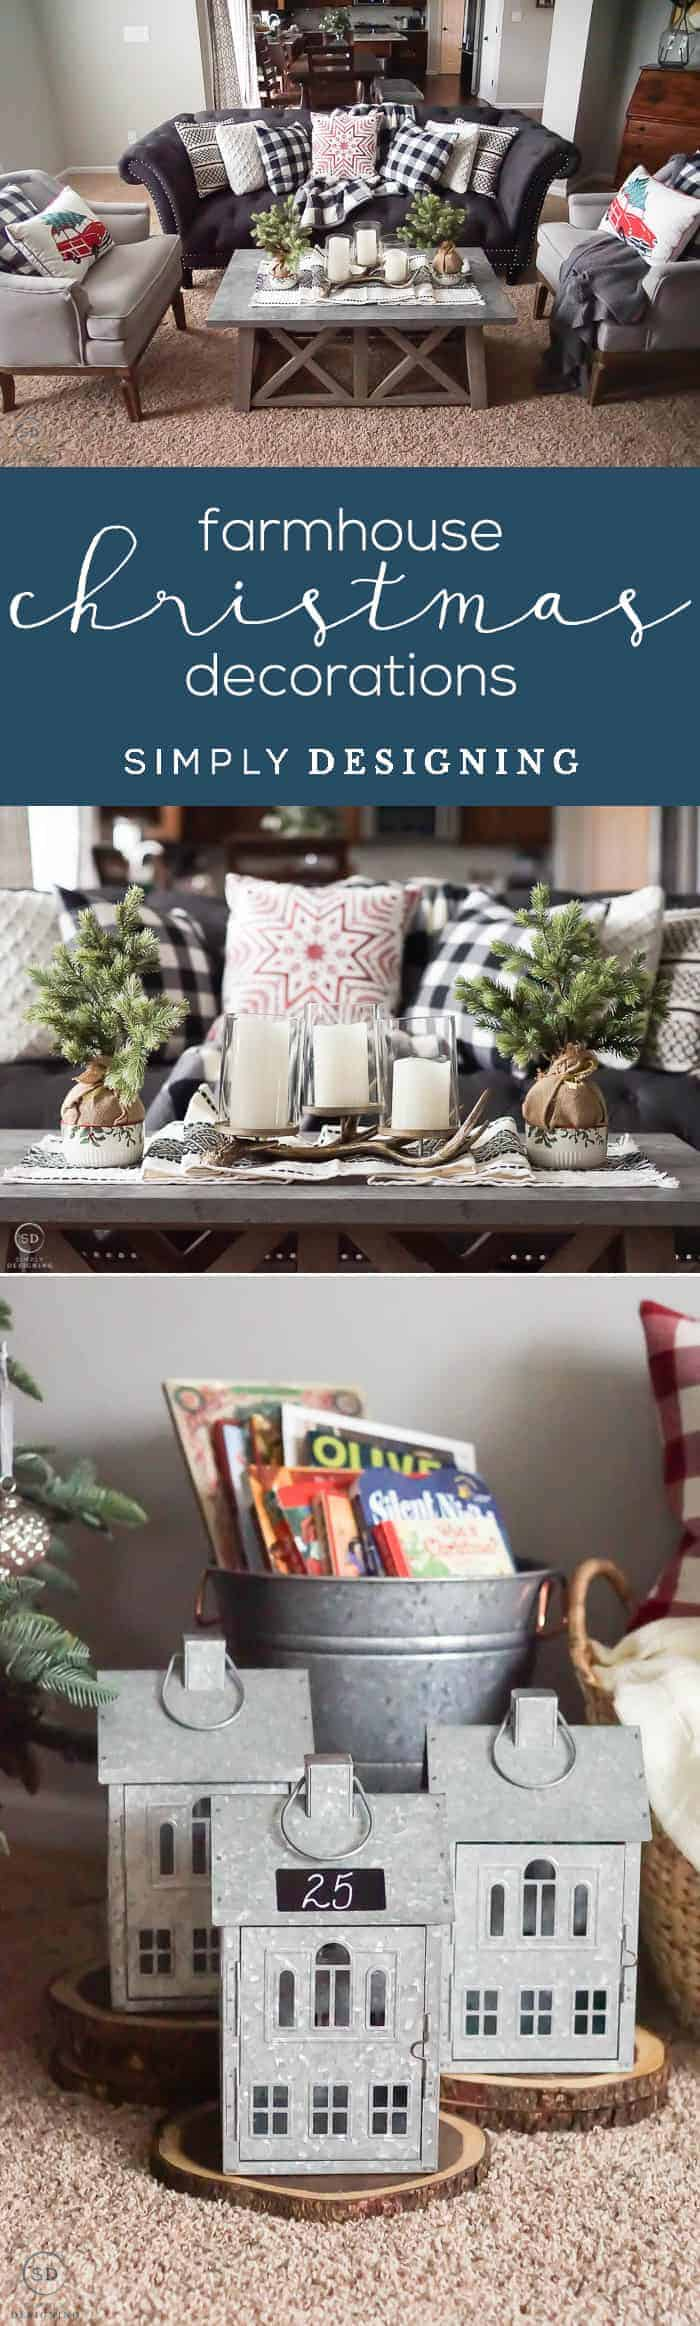 Farmhouse Christmas Decorations that are easy and inexpsneive - free printable countdown calendar